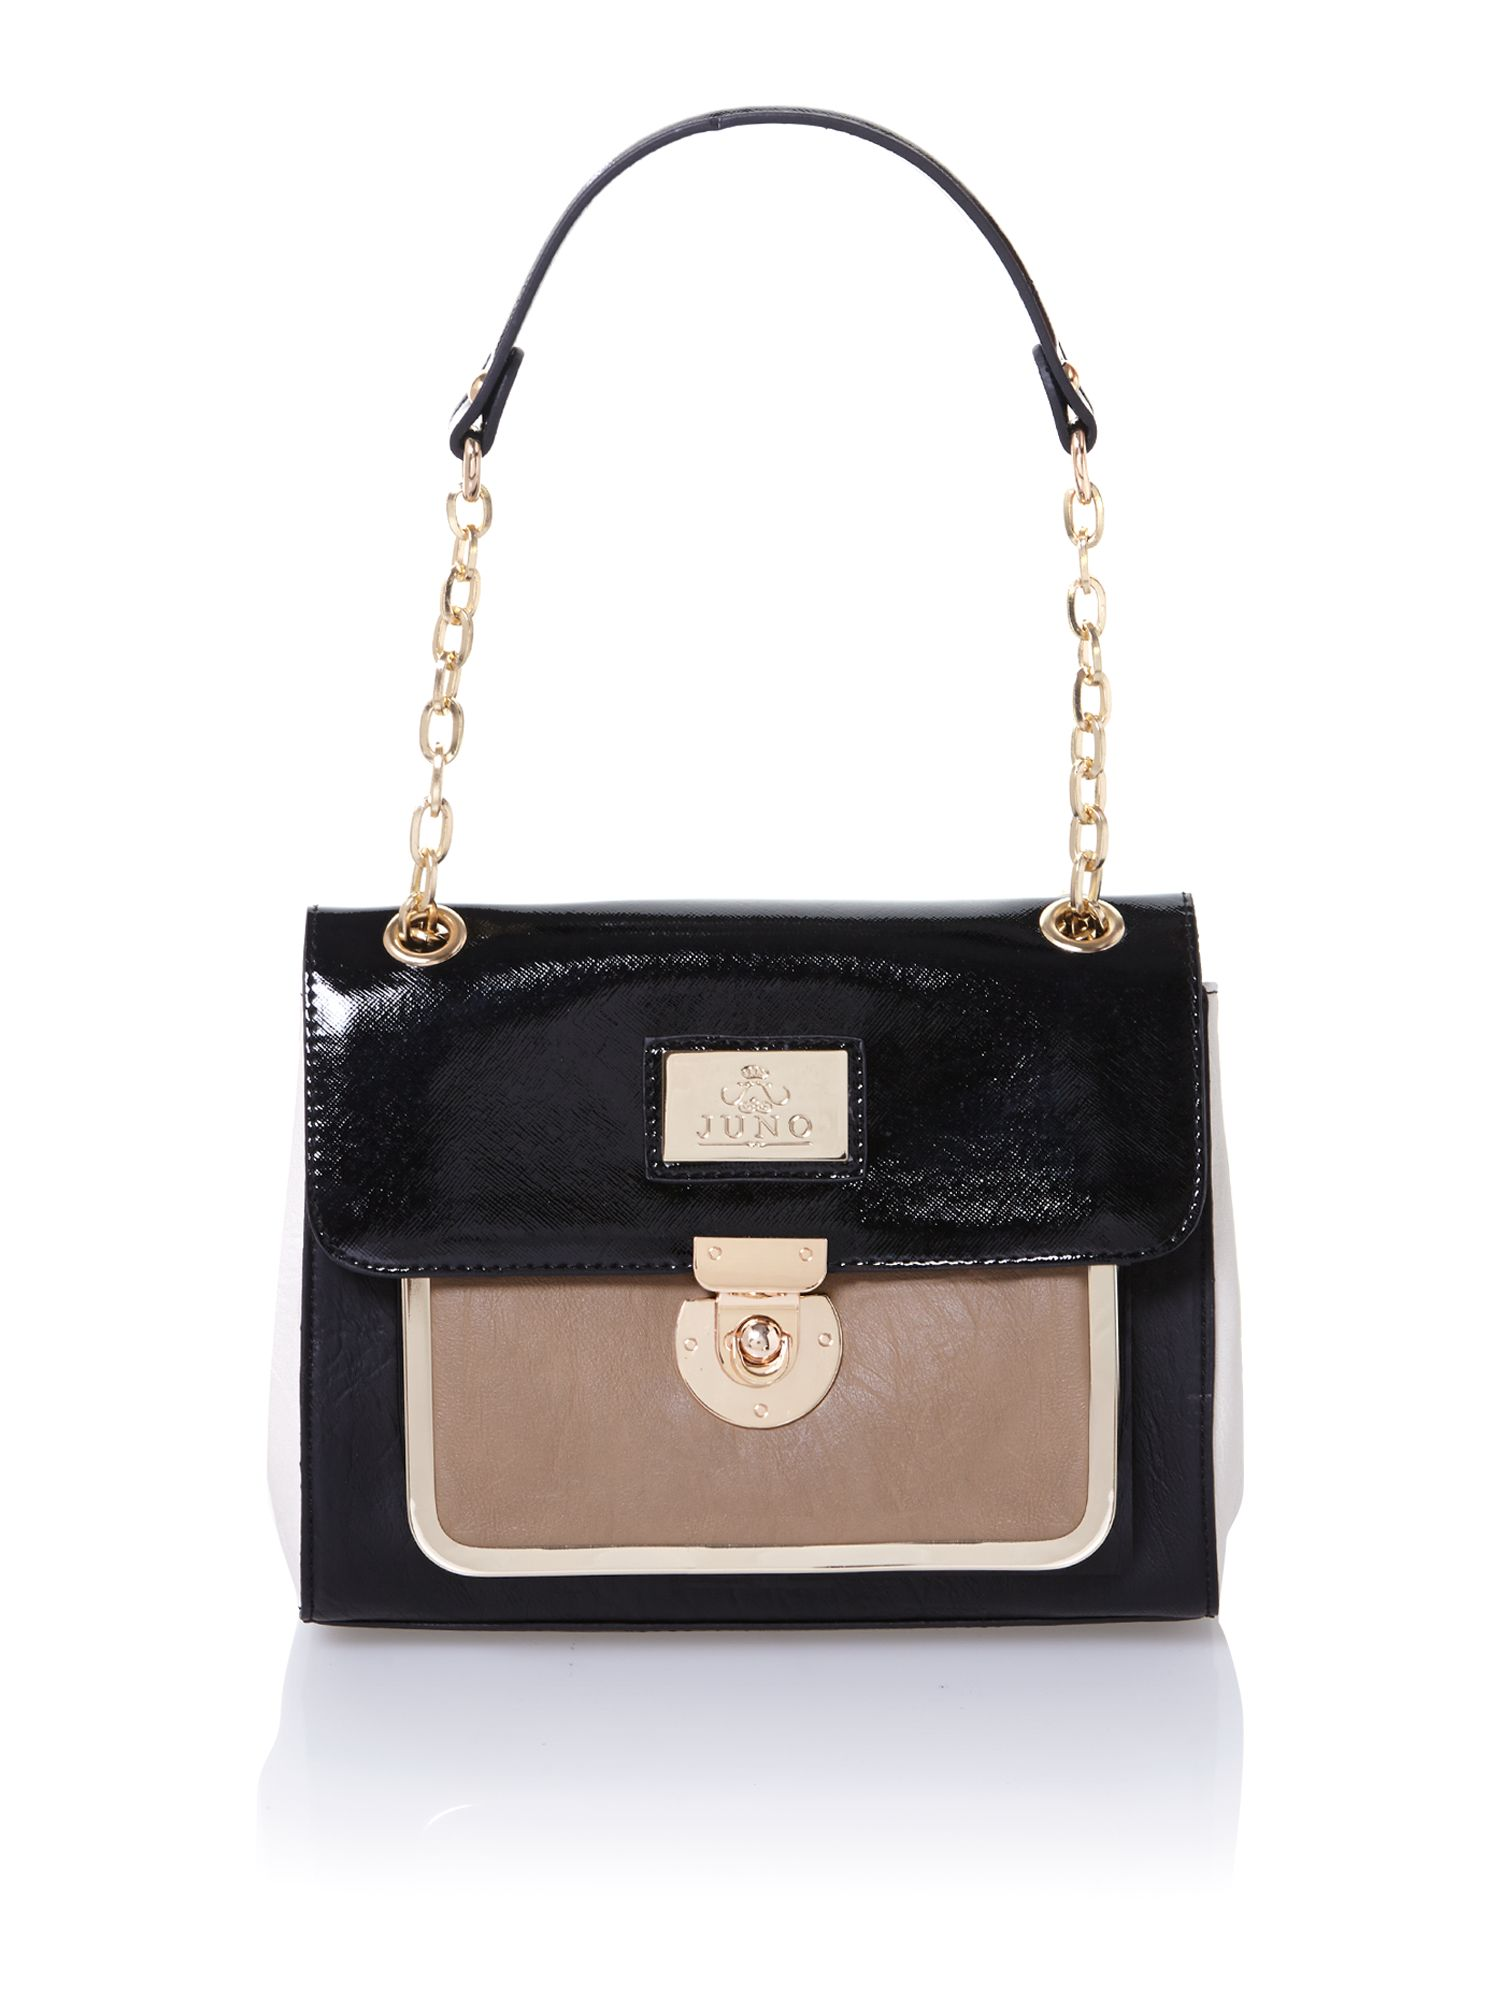 Black and neutral shoulder bag with chain strap